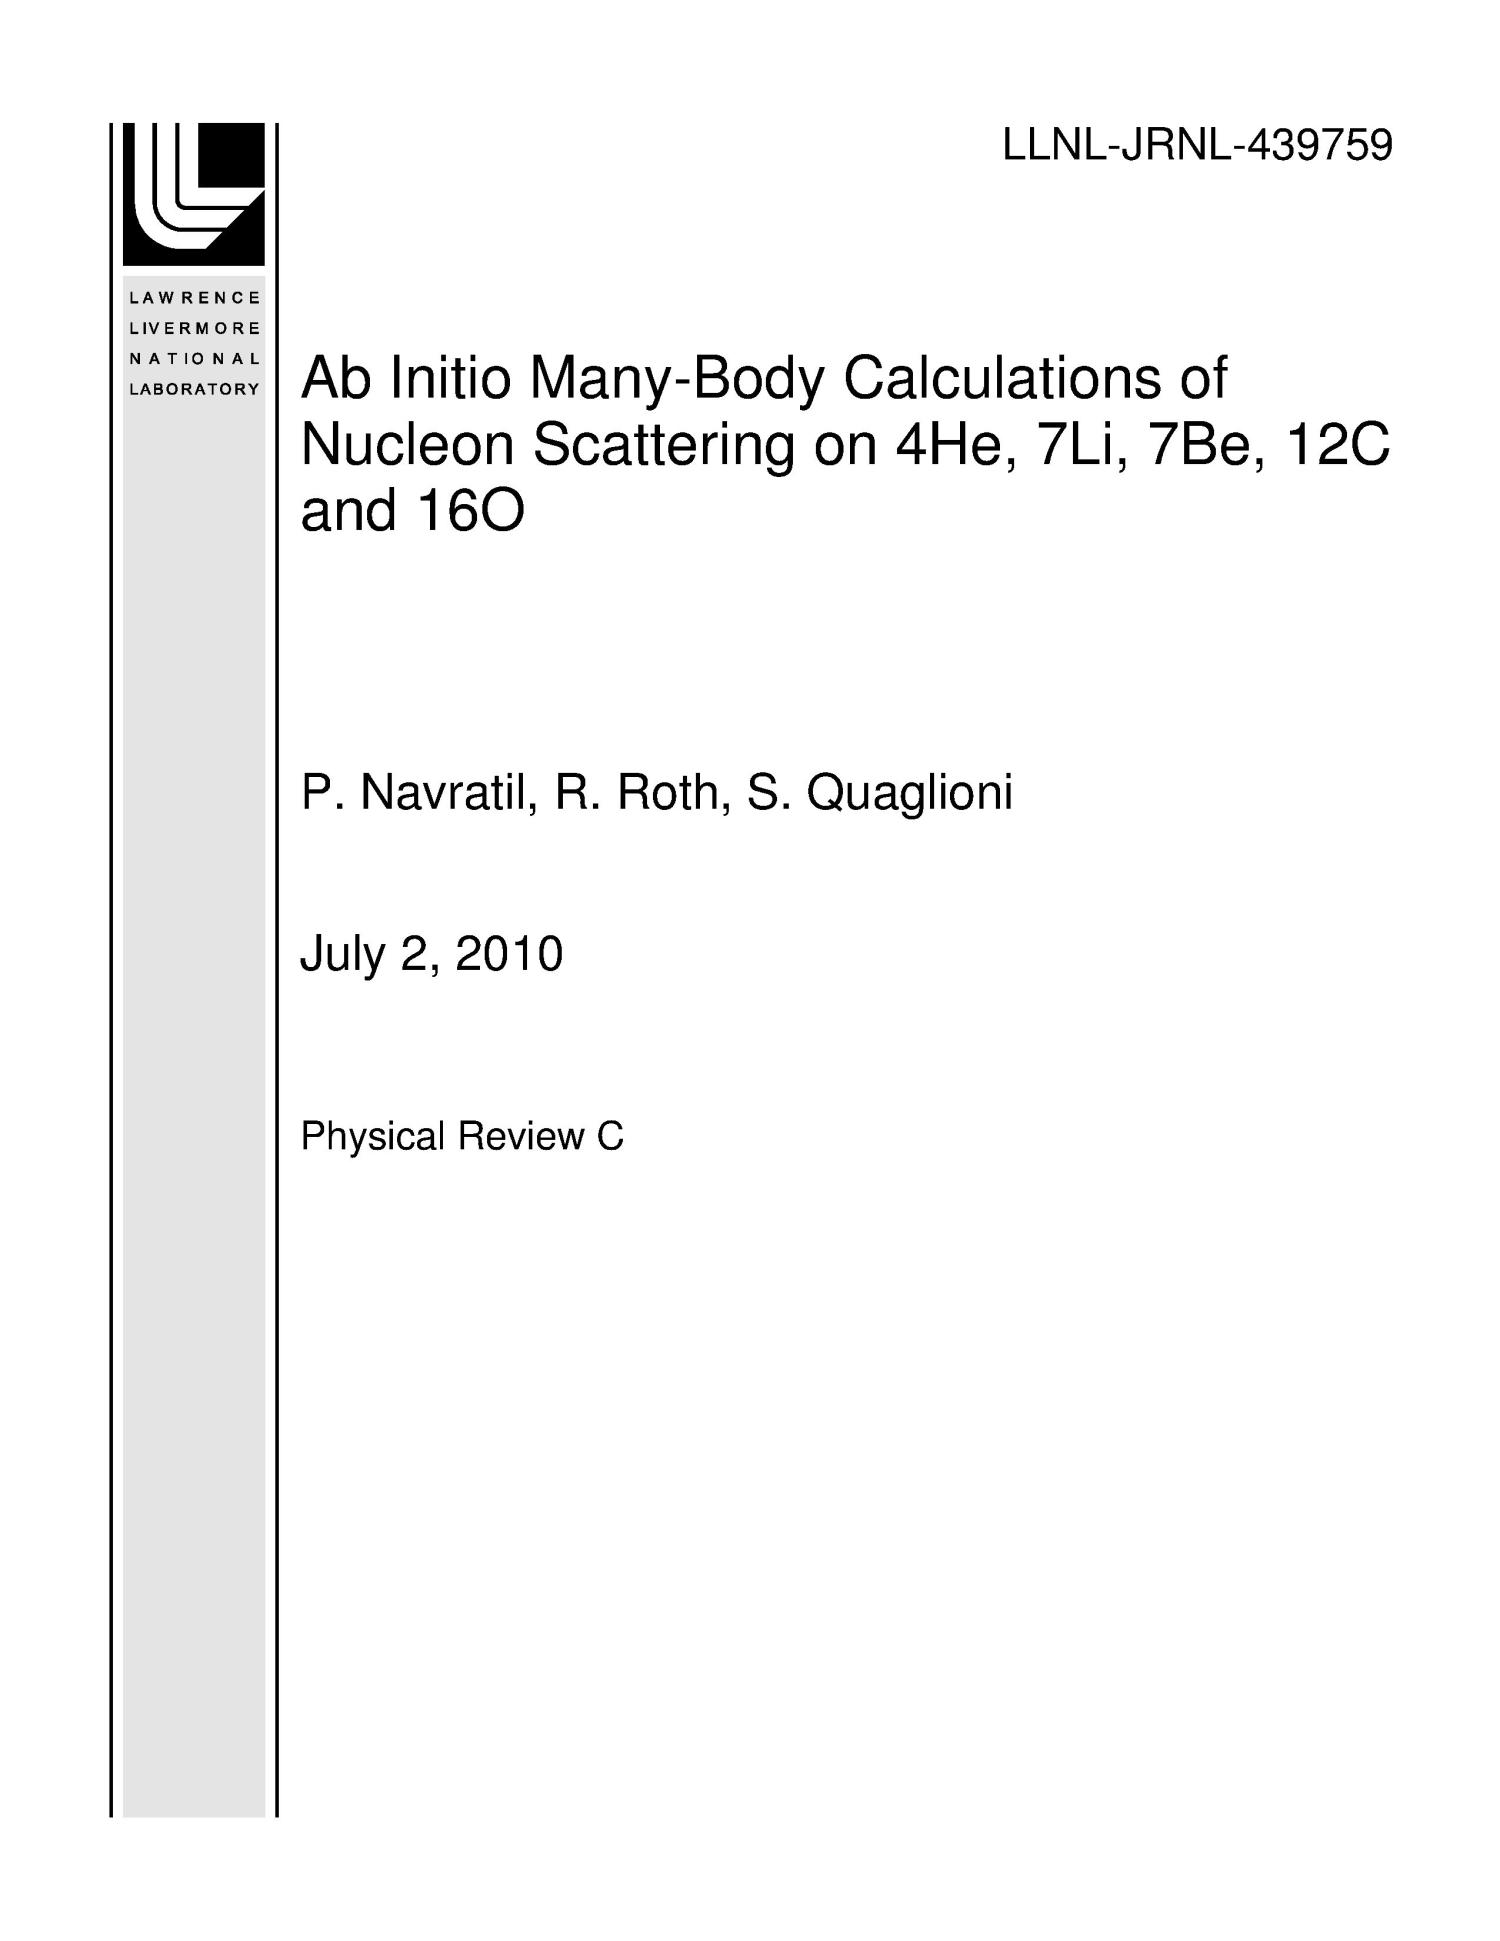 Ab Initio Many-Body Calculations of Nucleon Scattering on 4He, 7Li, 7Be, 12C and 16O                                                                                                      [Sequence #]: 1 of 20